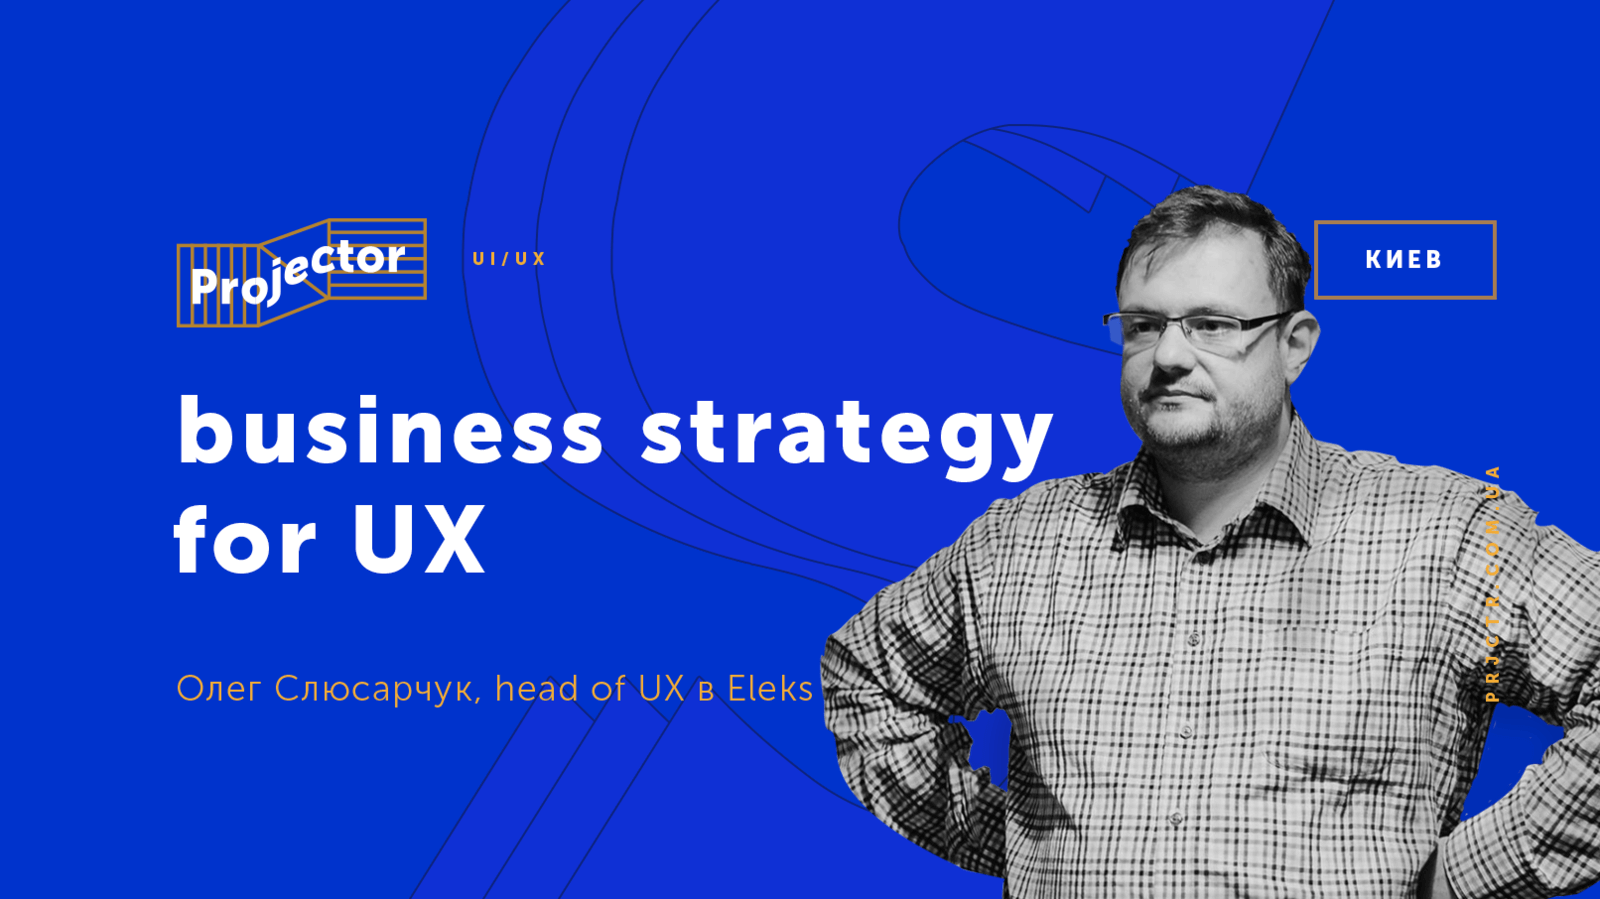 Business strategy for UX